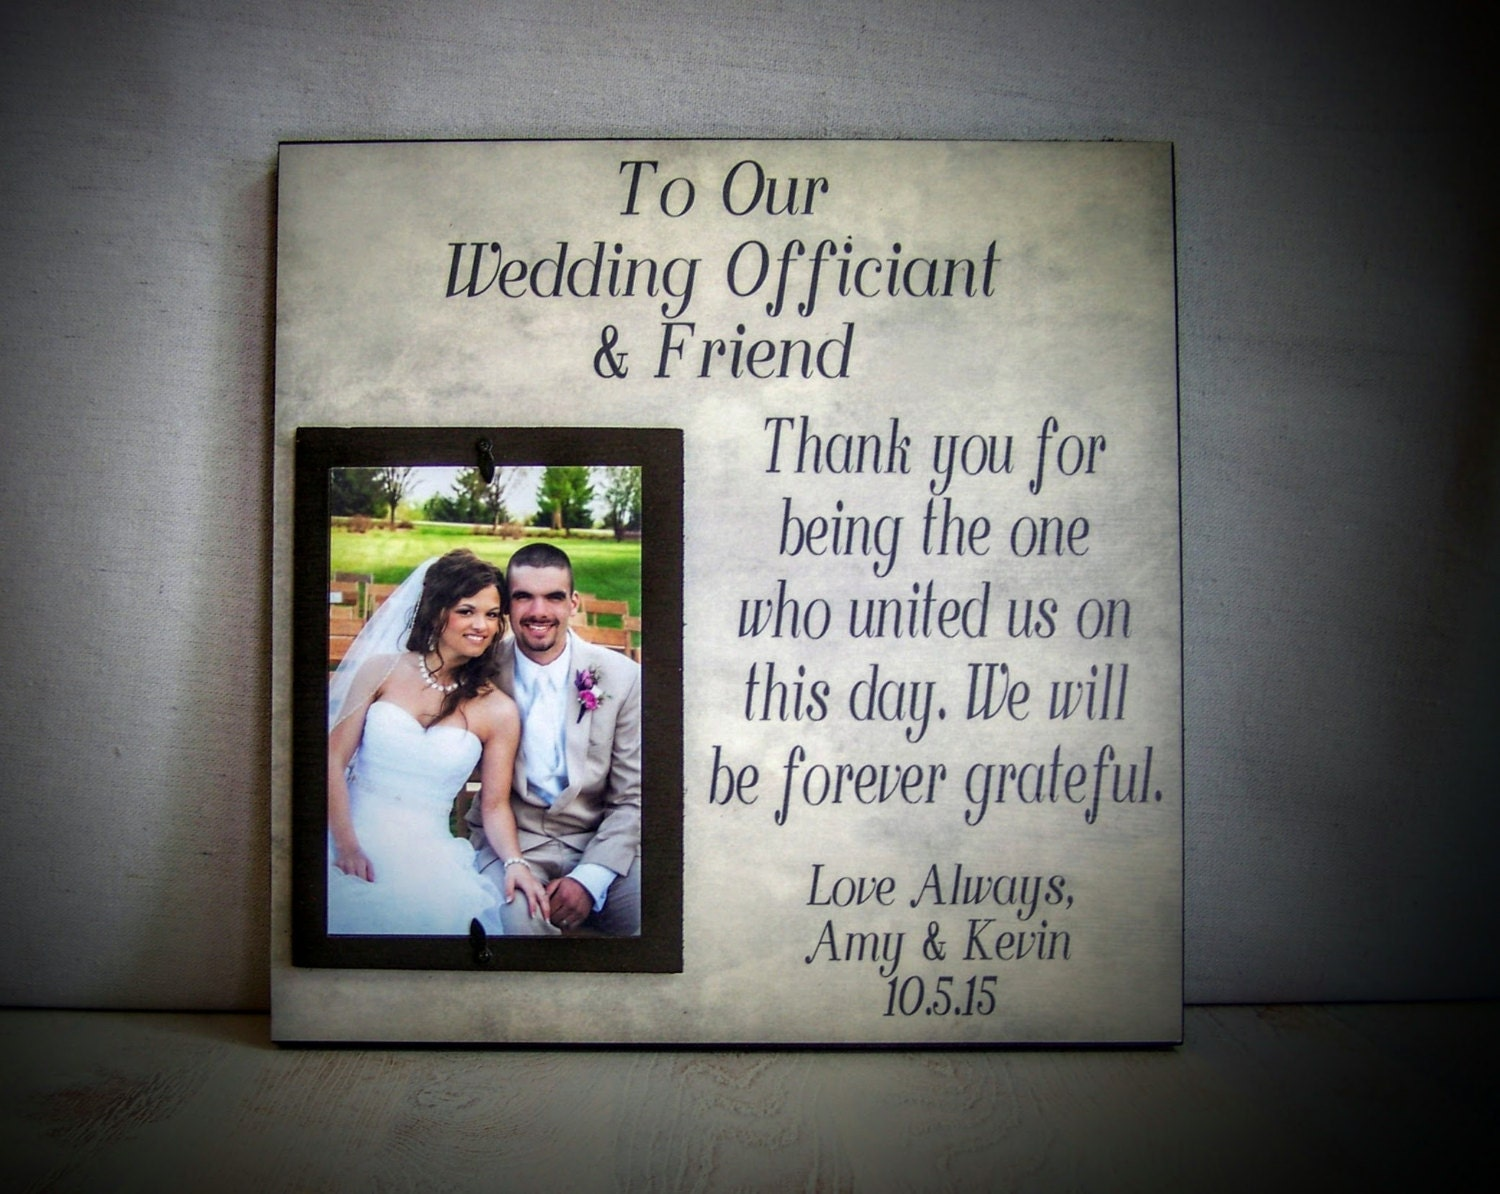 Wedding Return Gifts For Friends: Wedding Officiant Gift : Perfect For The Friend & Wedding